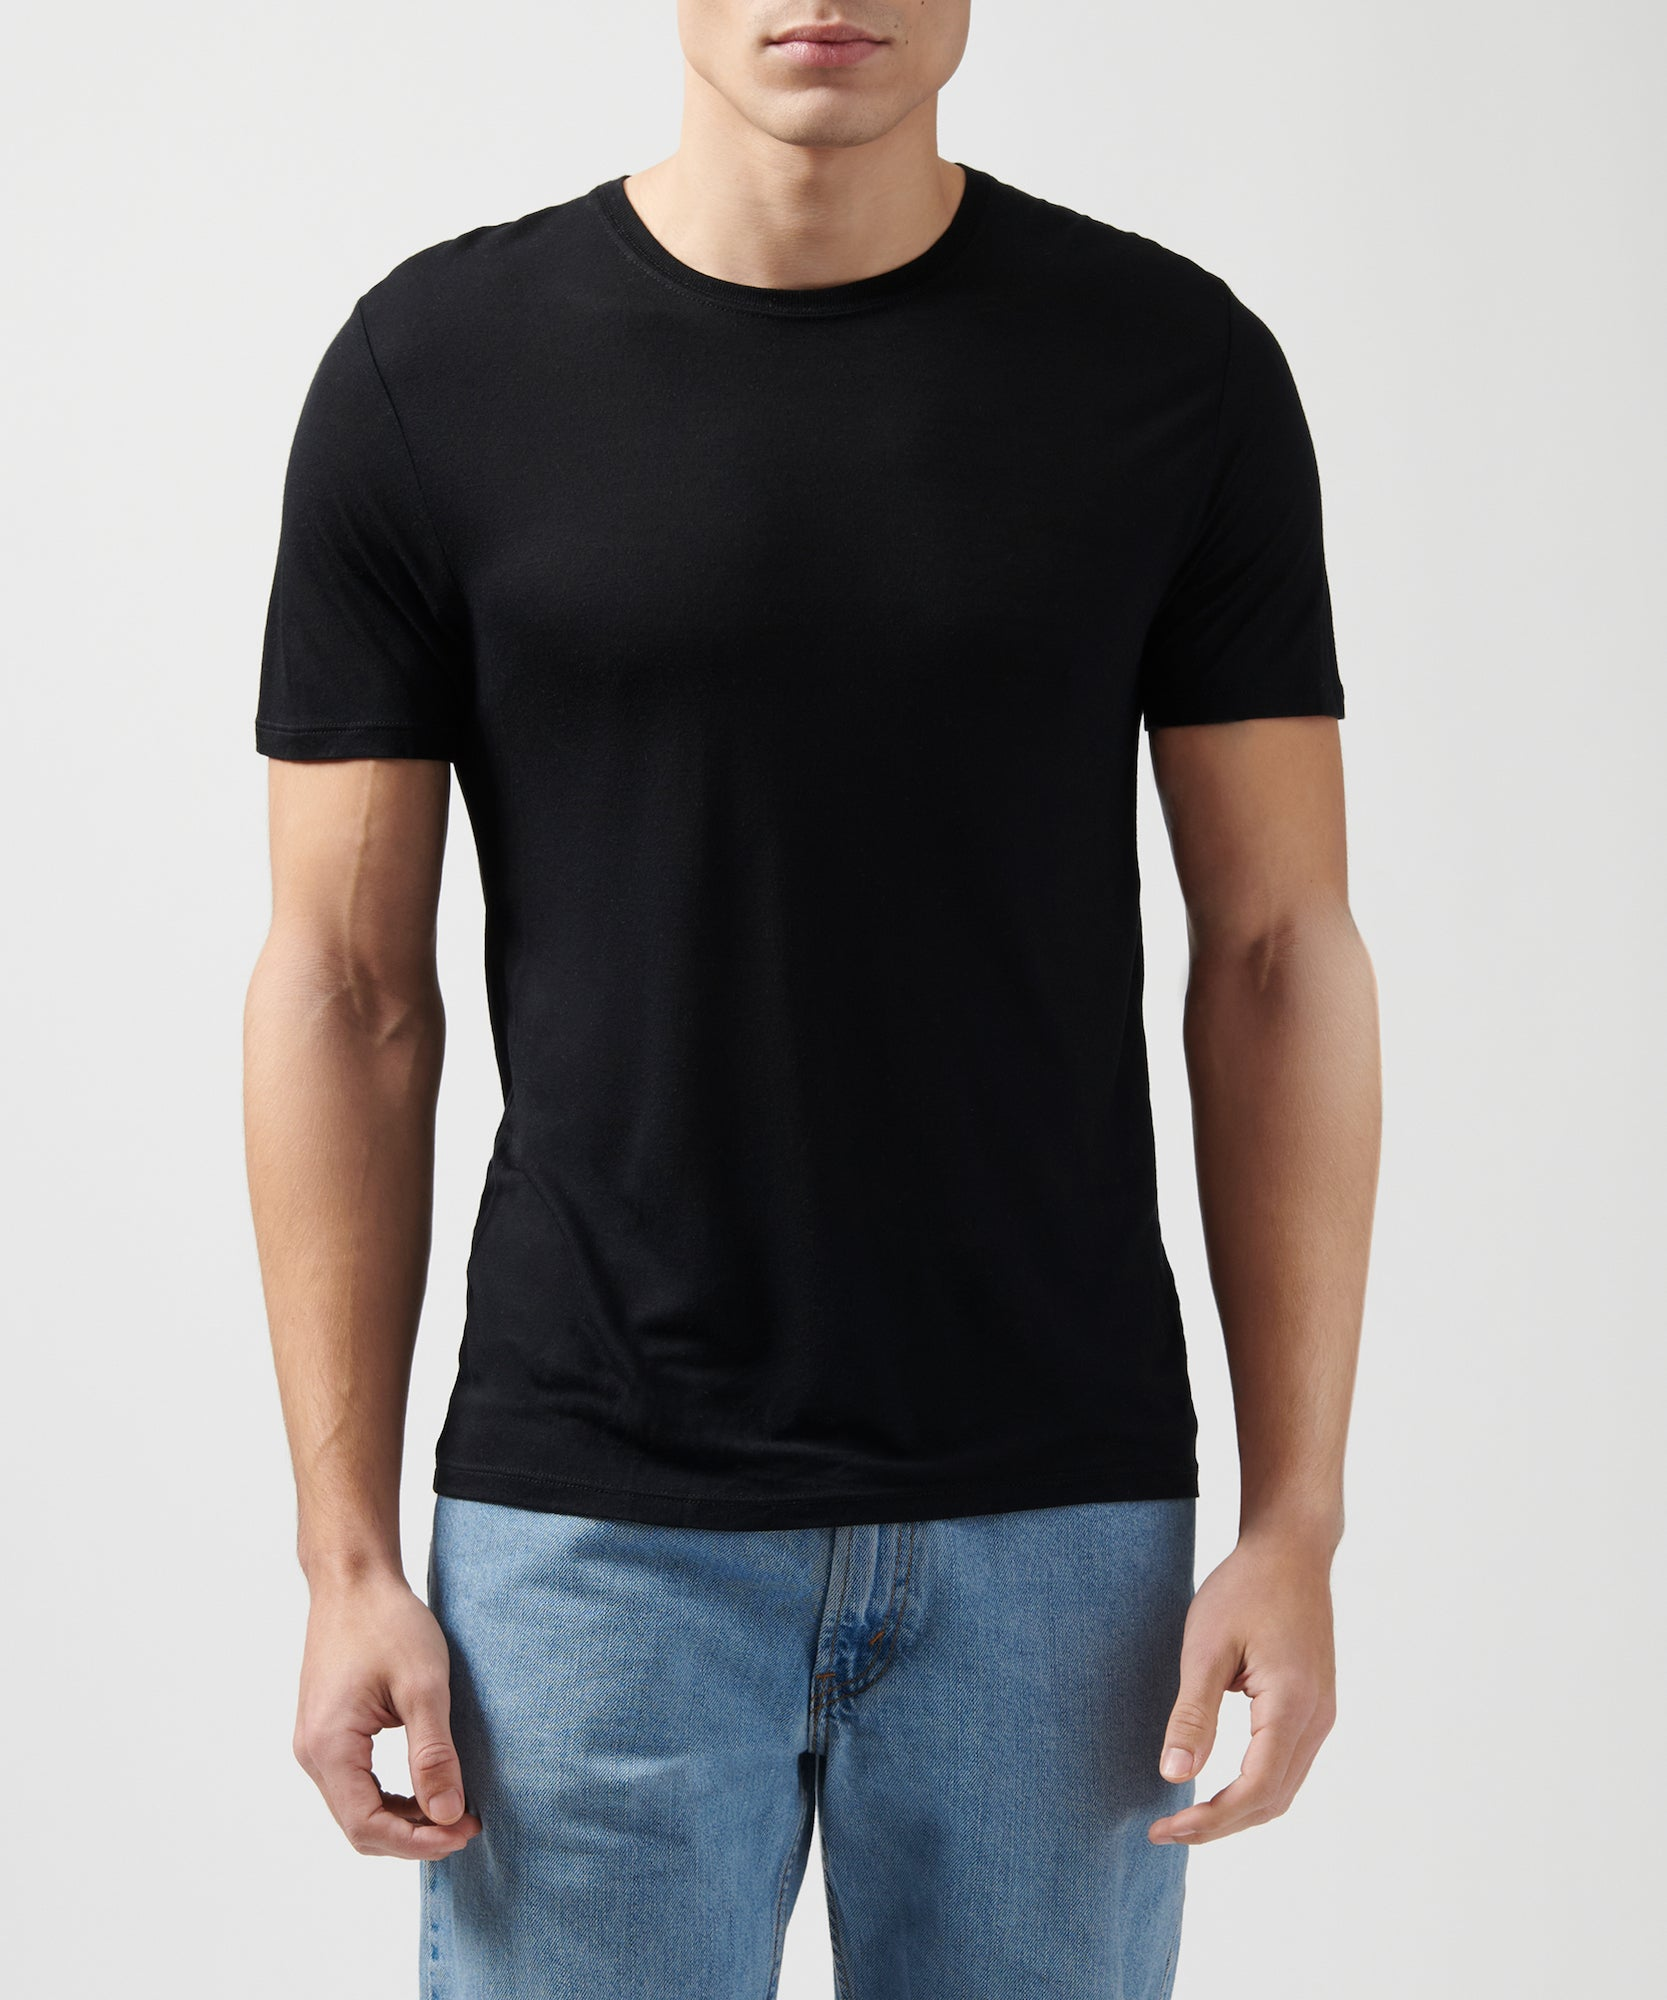 Black Modal Jersey Crew Neck Tee - Men's Jersey Short Sleeve Tee by ATM Anthony Thomas Melillo